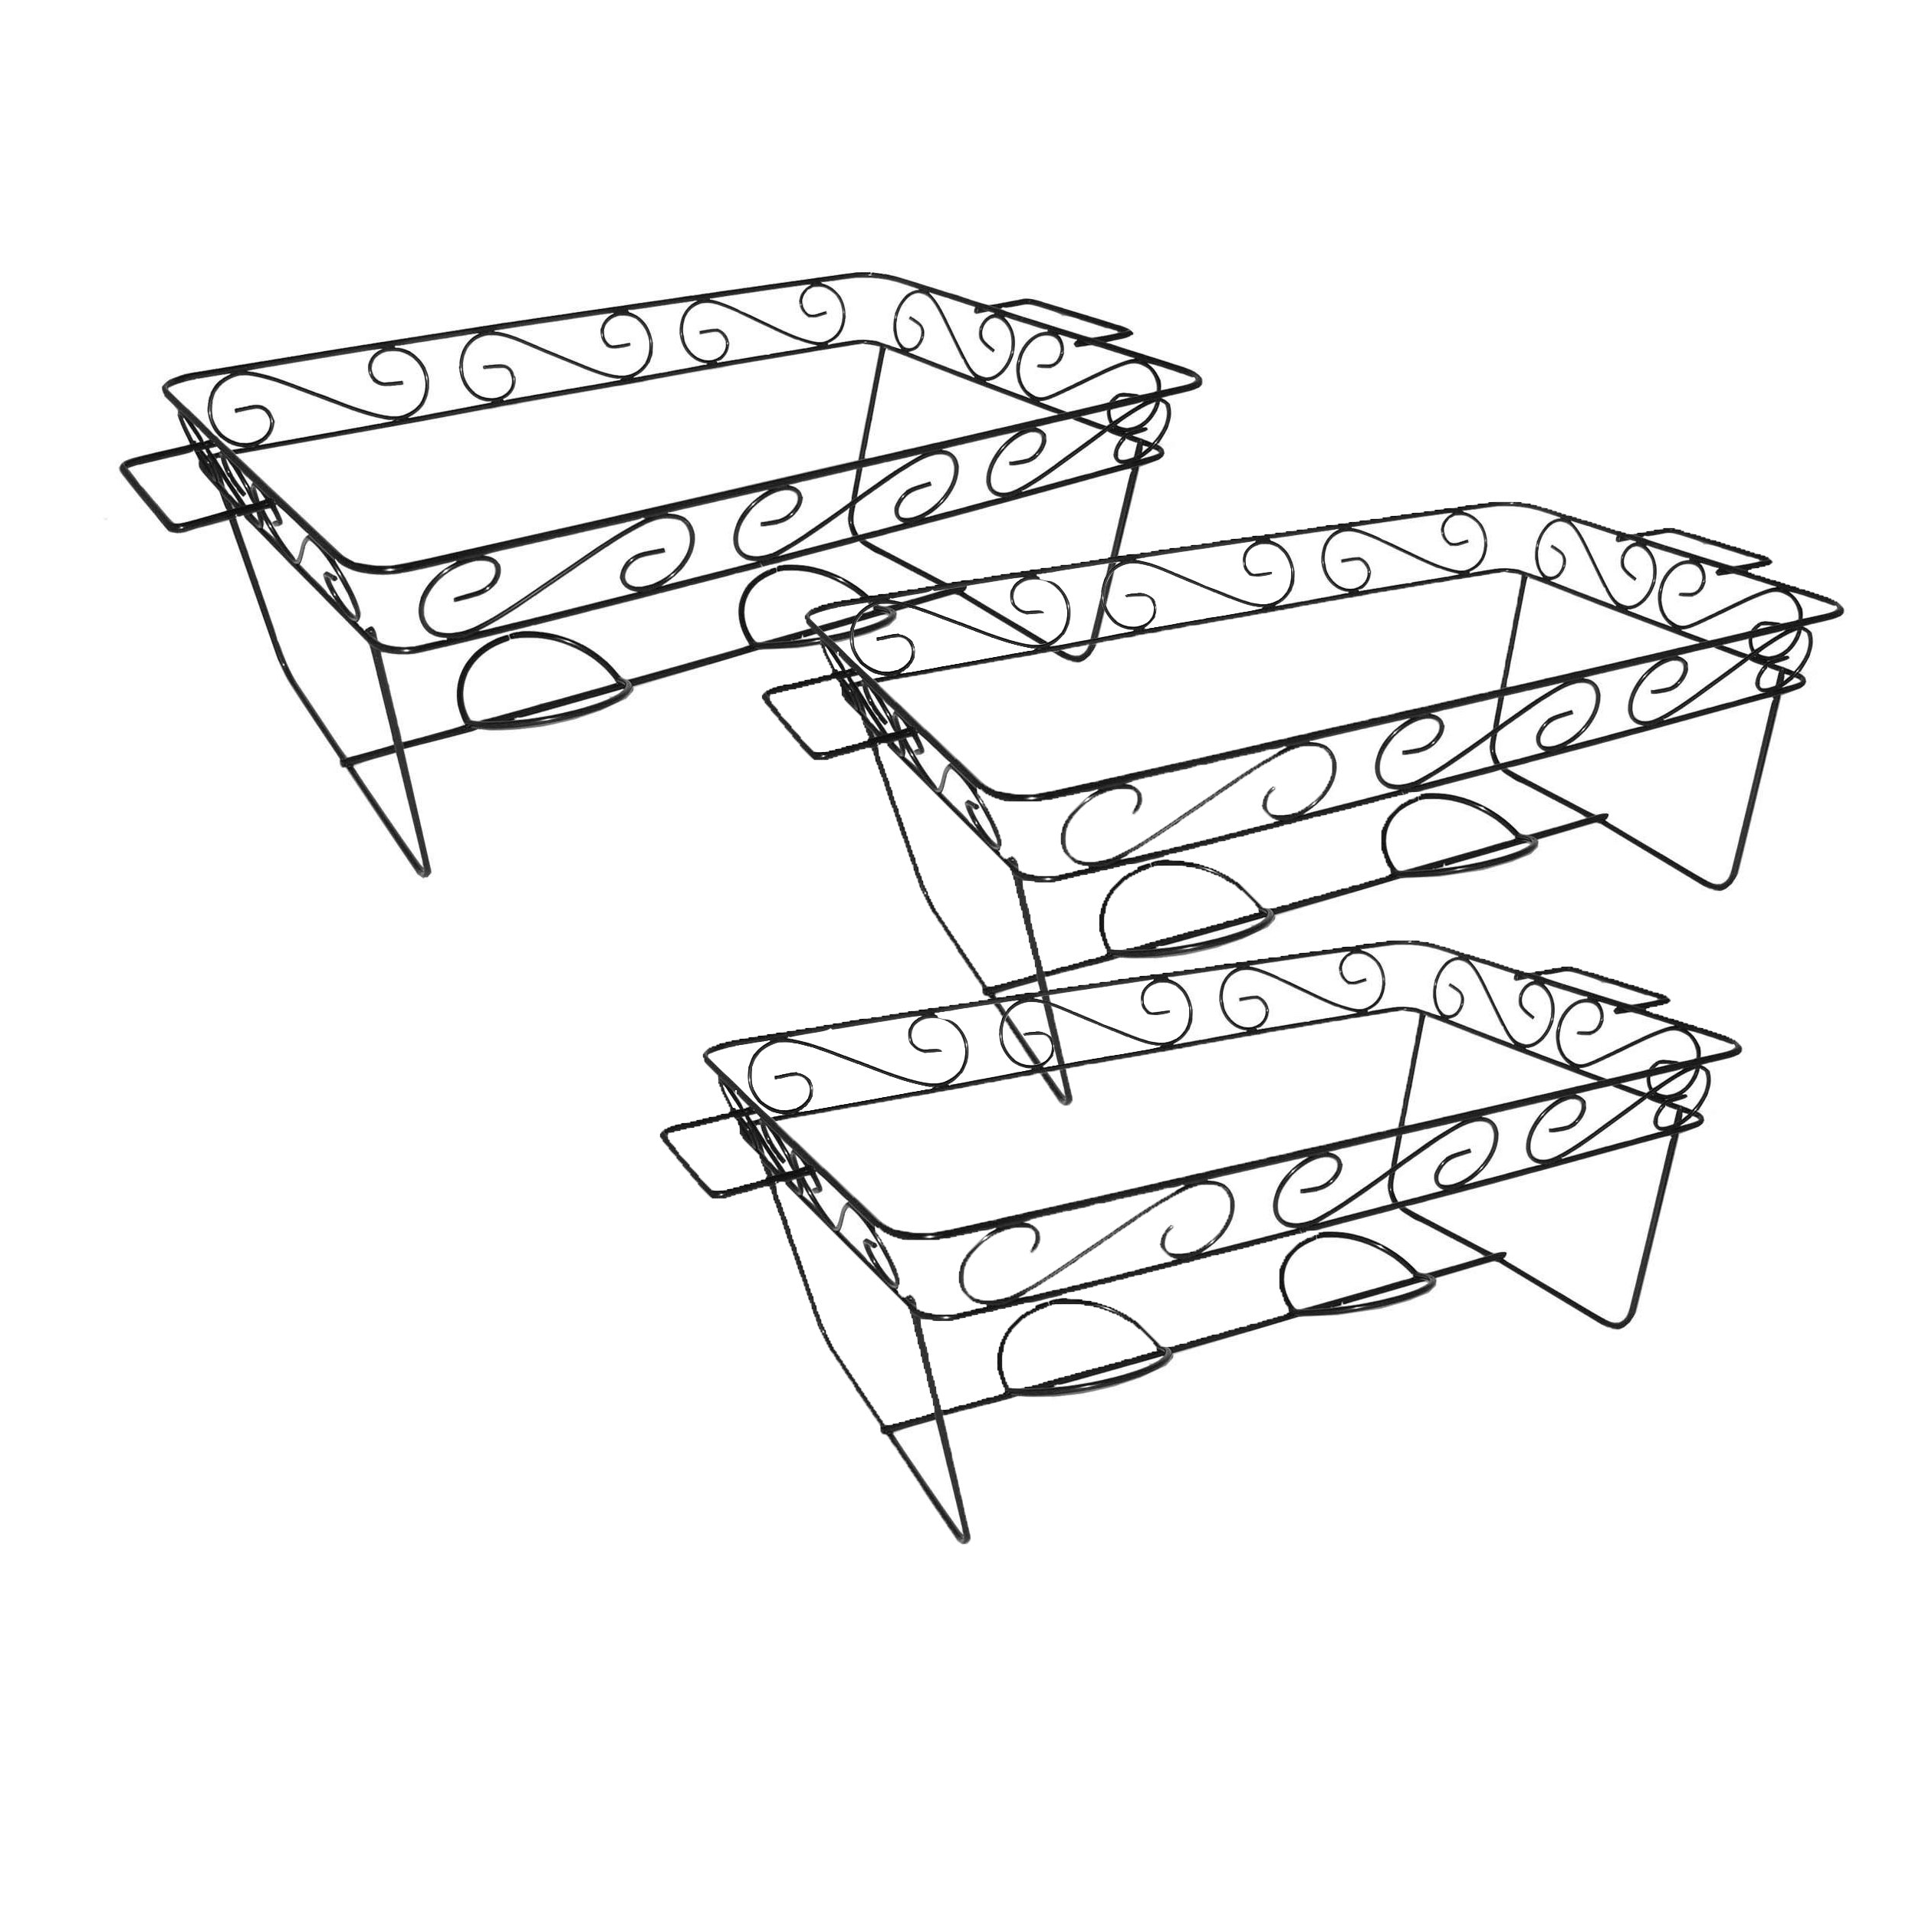 Party Essentials 3-Count Full Size Elegance Chafing Racks, Black by Party Essentials